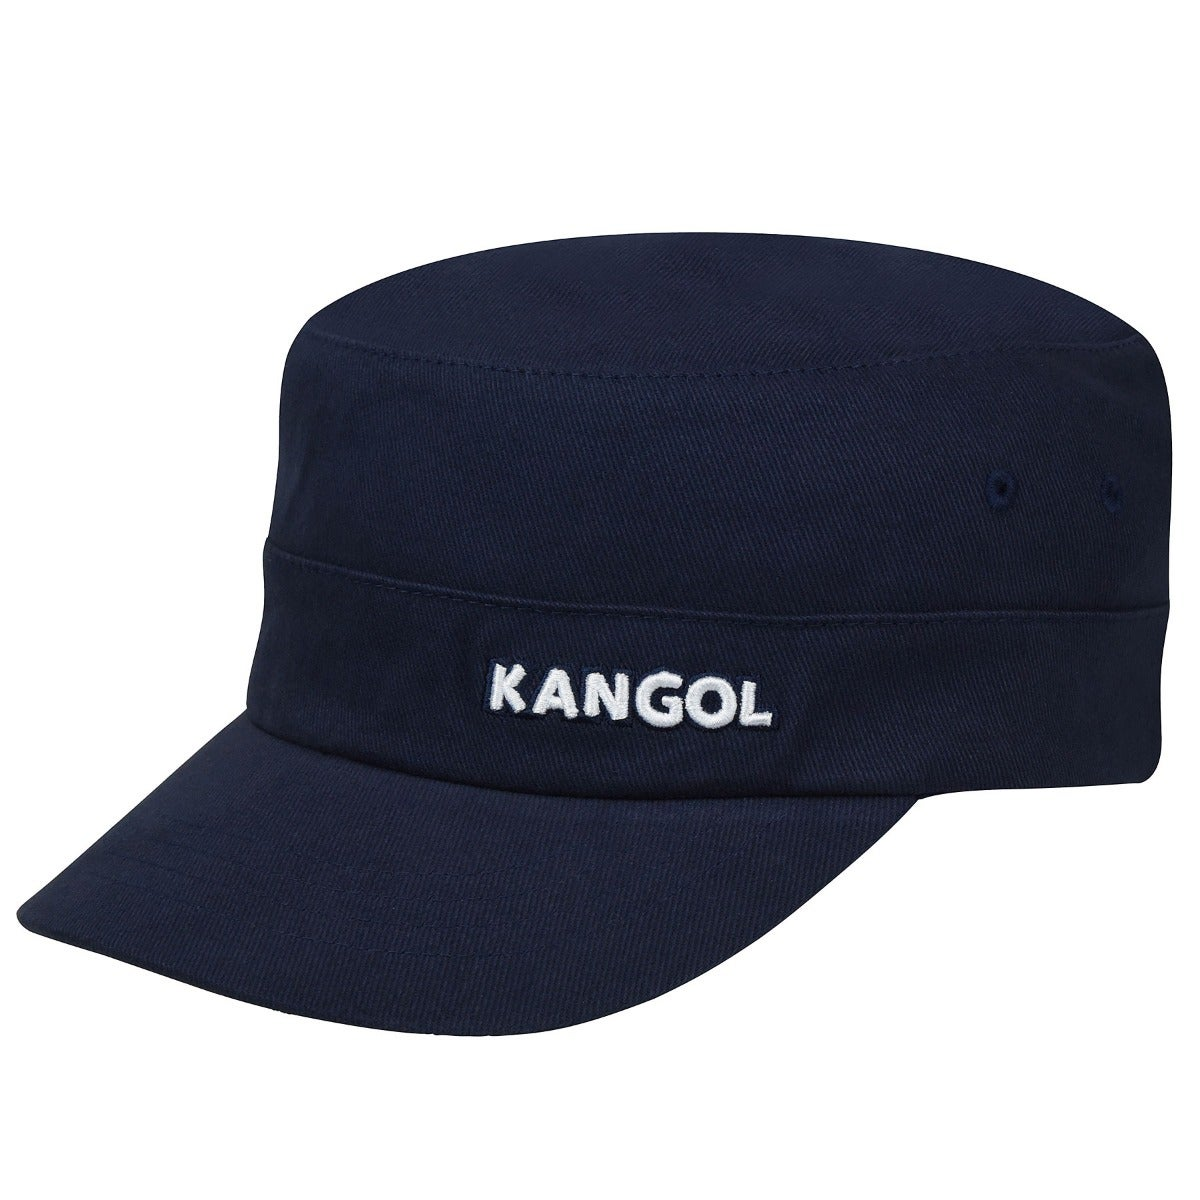 Kangol Cotton Twill Army Cap in Navy